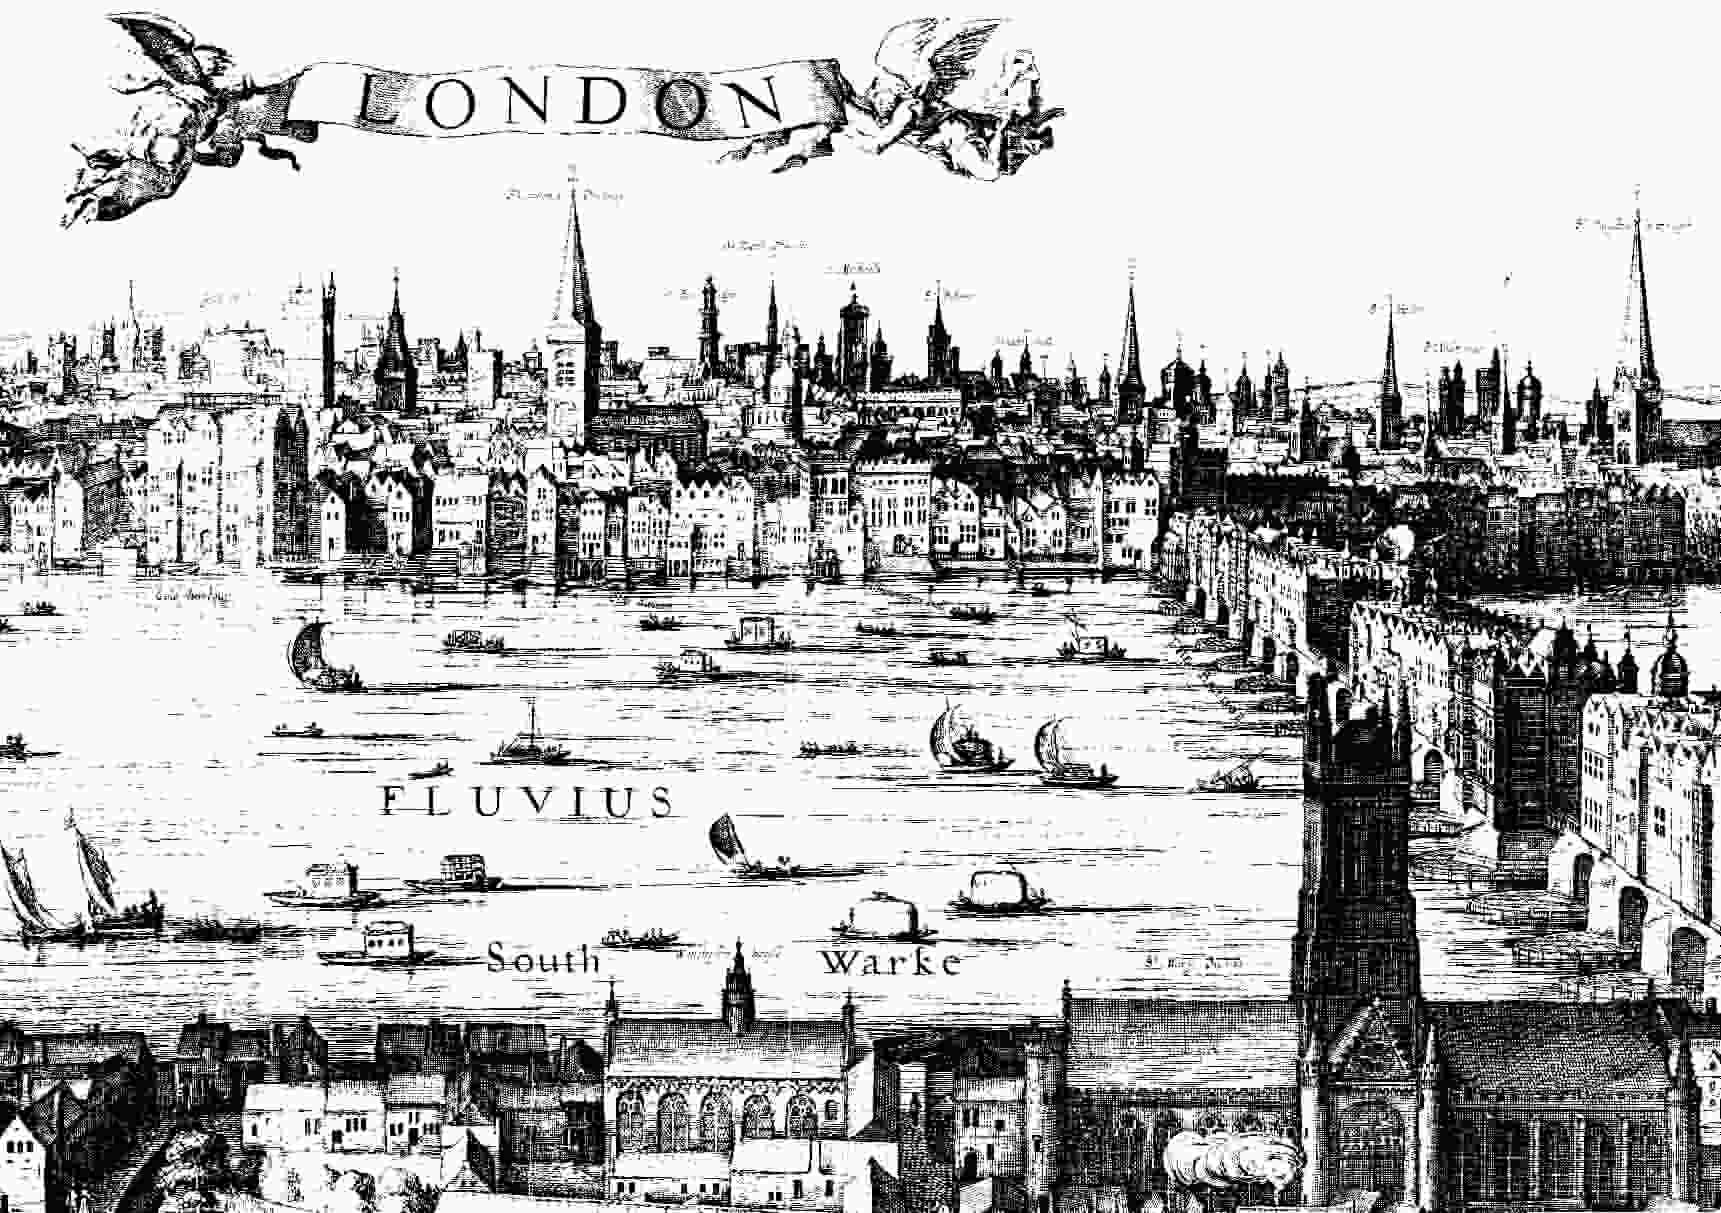 London in the 17th century